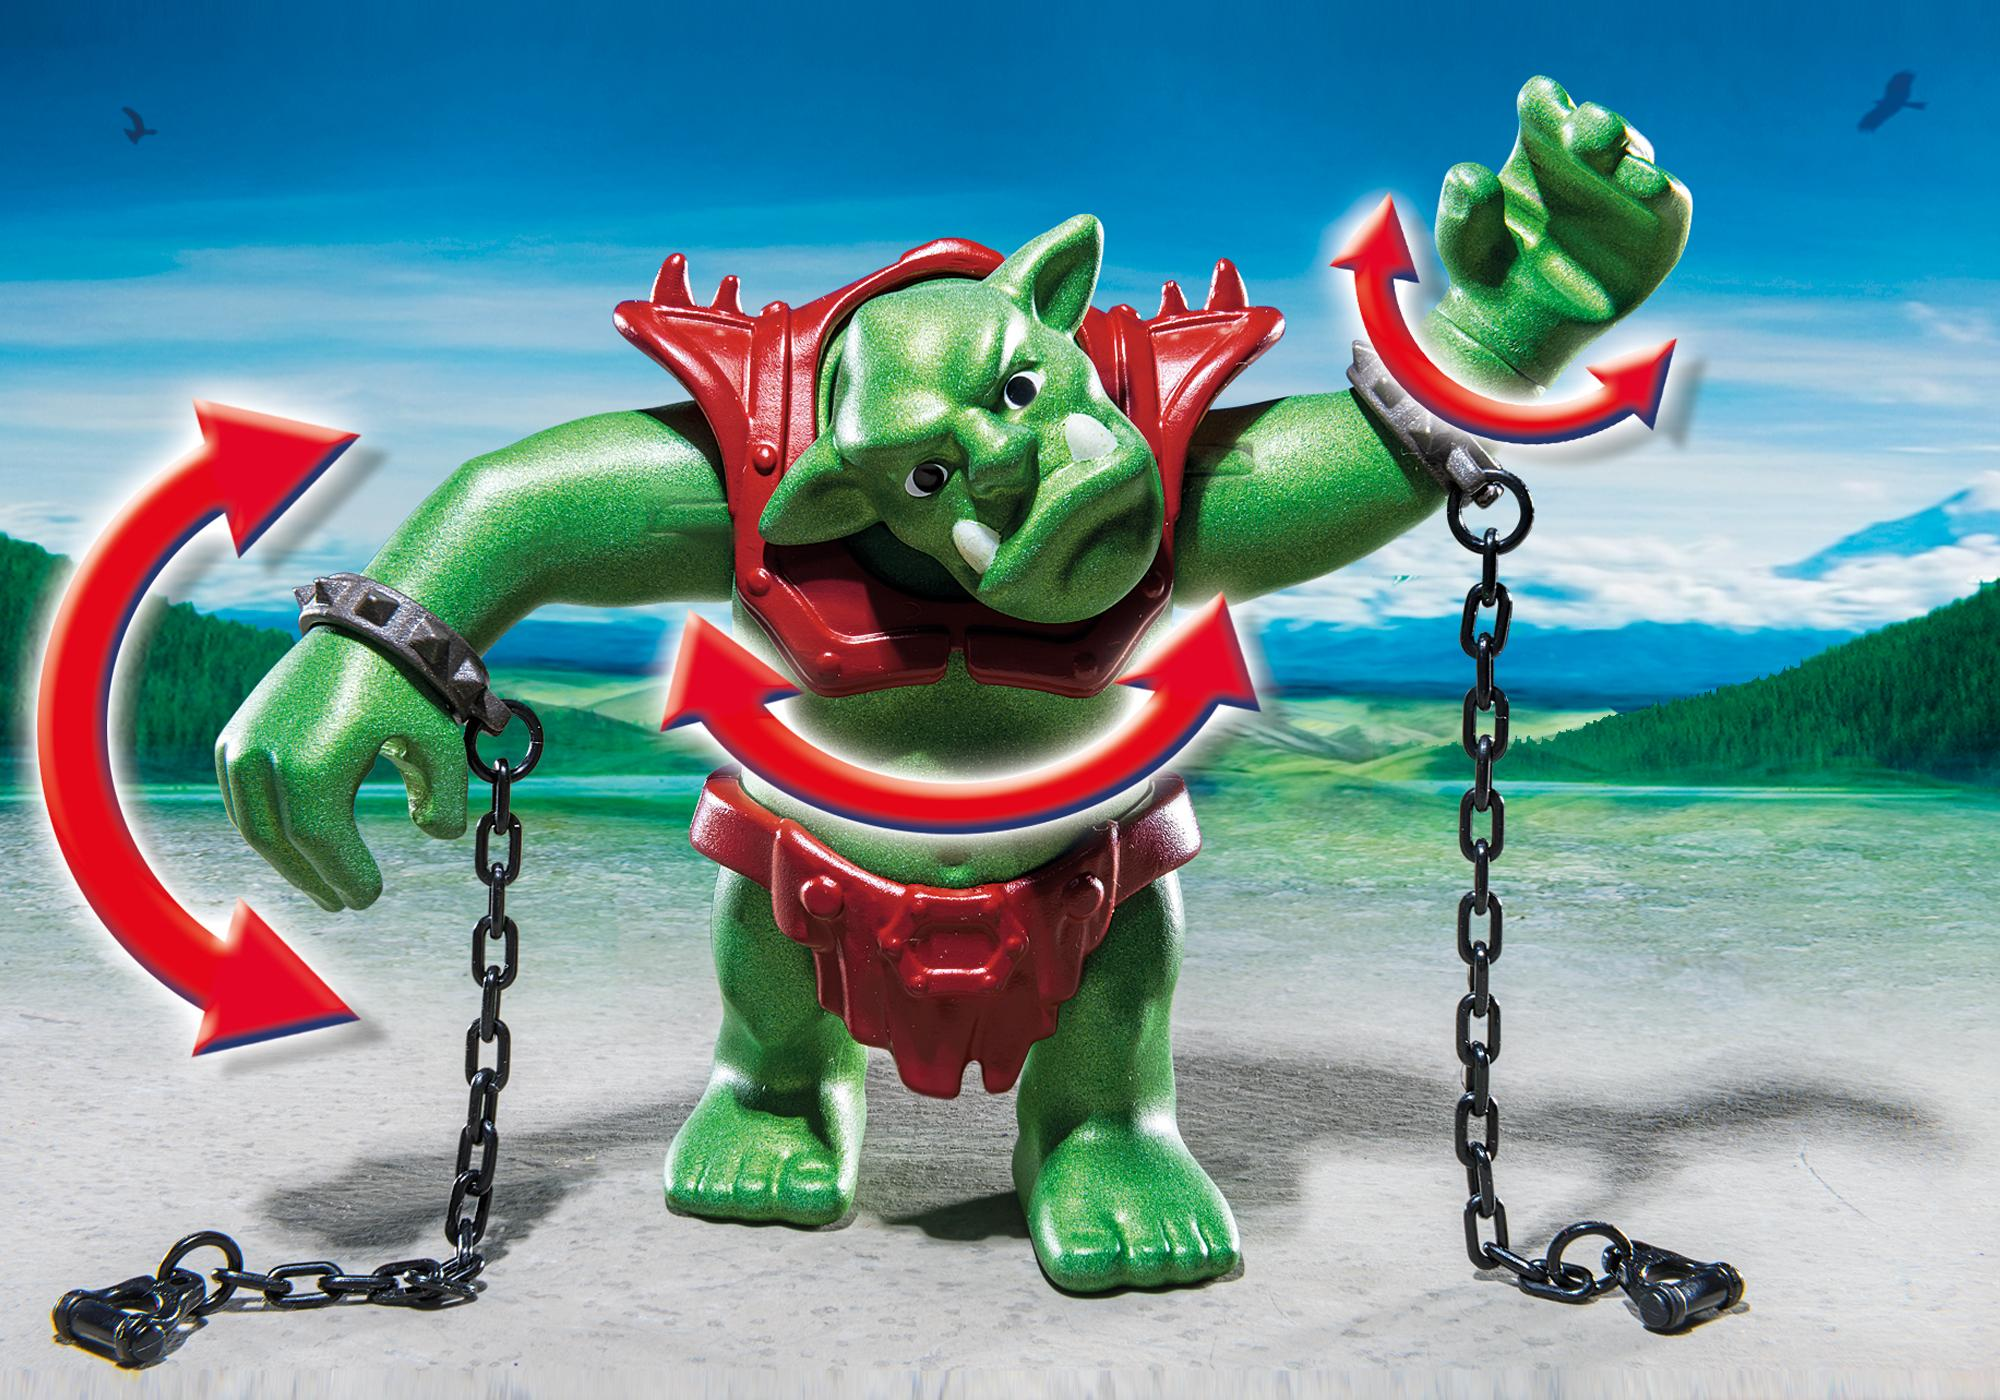 http://media.playmobil.com/i/playmobil/6004_product_extra1/Giant Troll with Dwarf Fighters